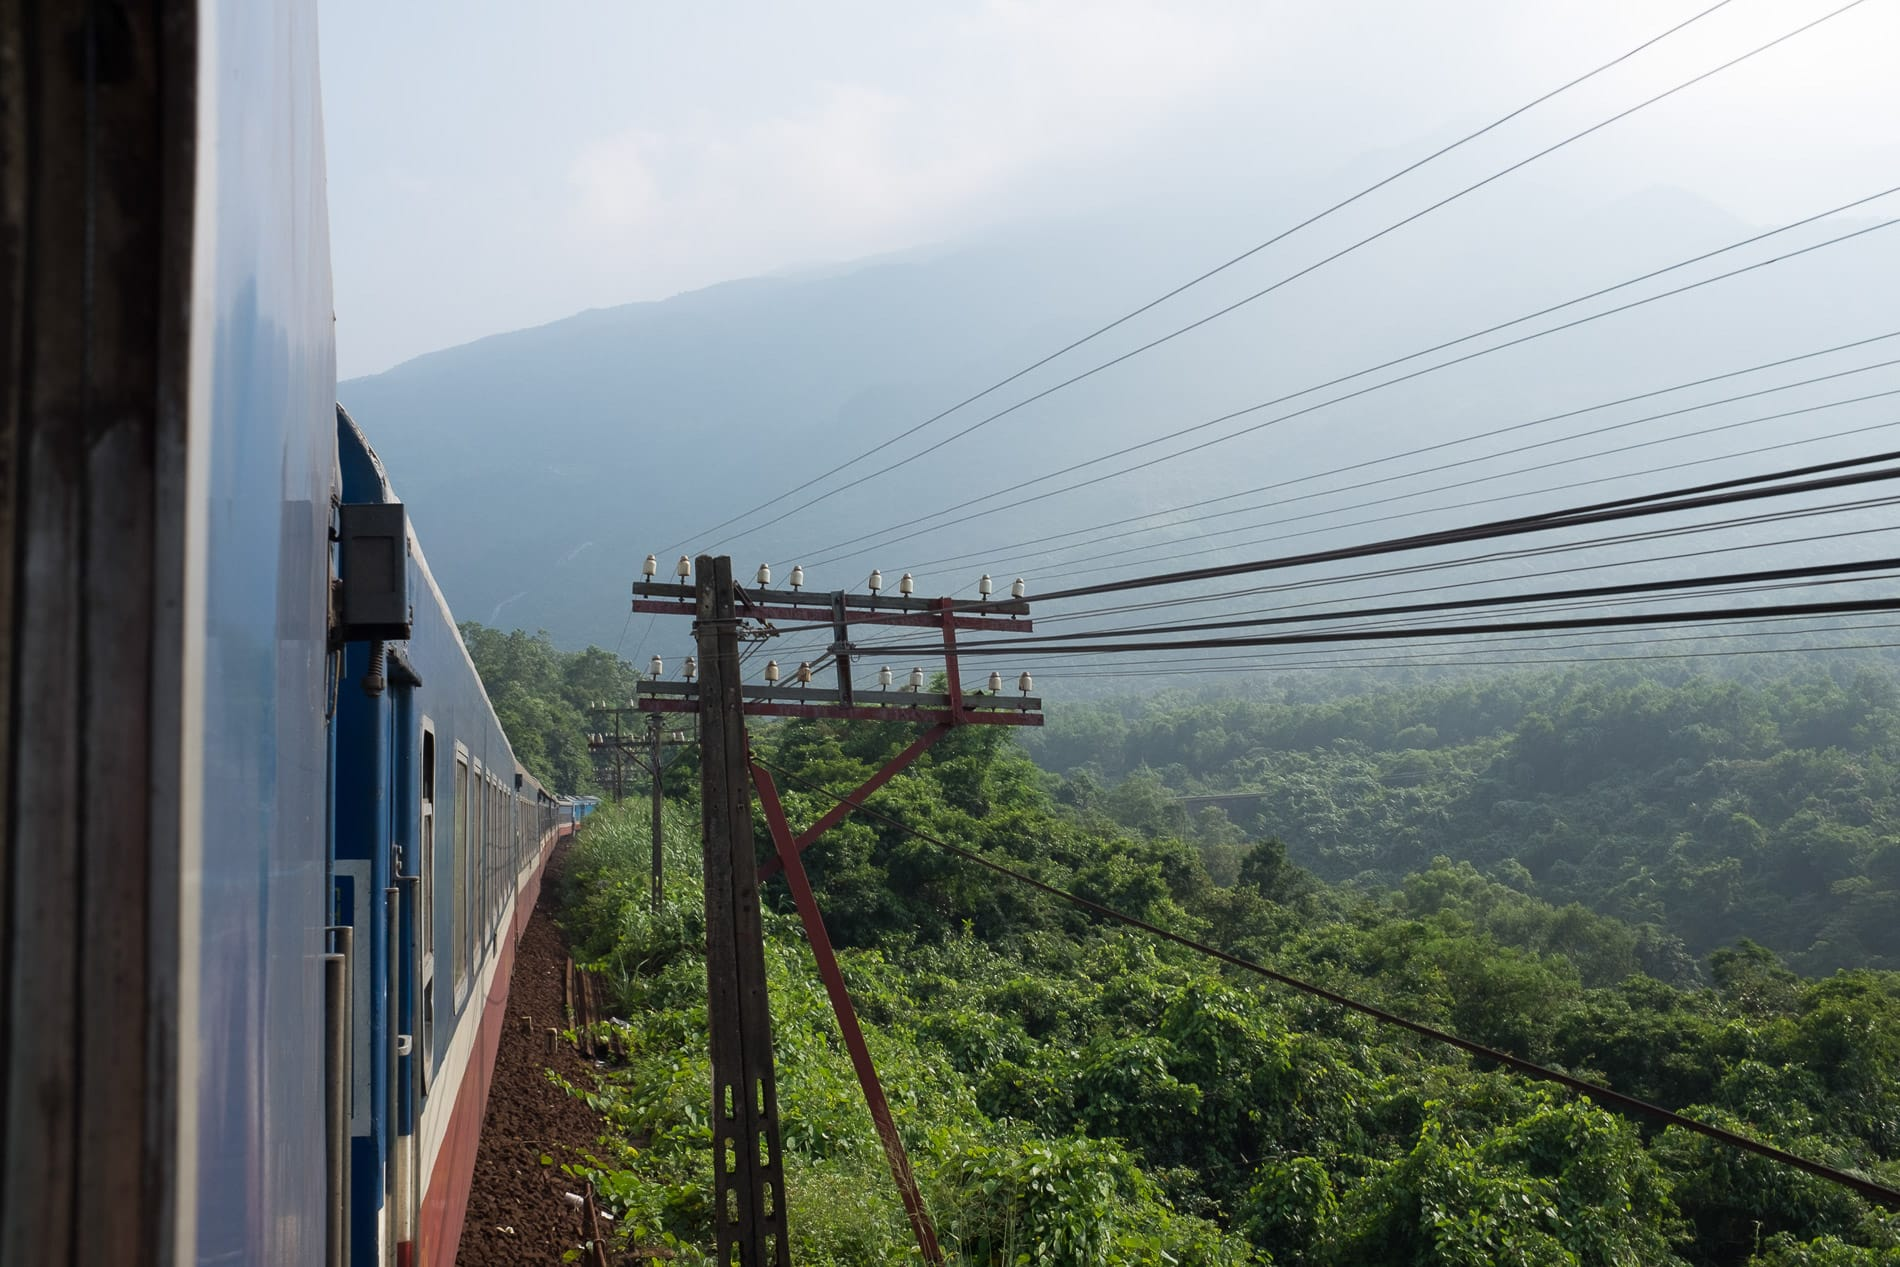 The long journey by train from Hanoi to Da Nang